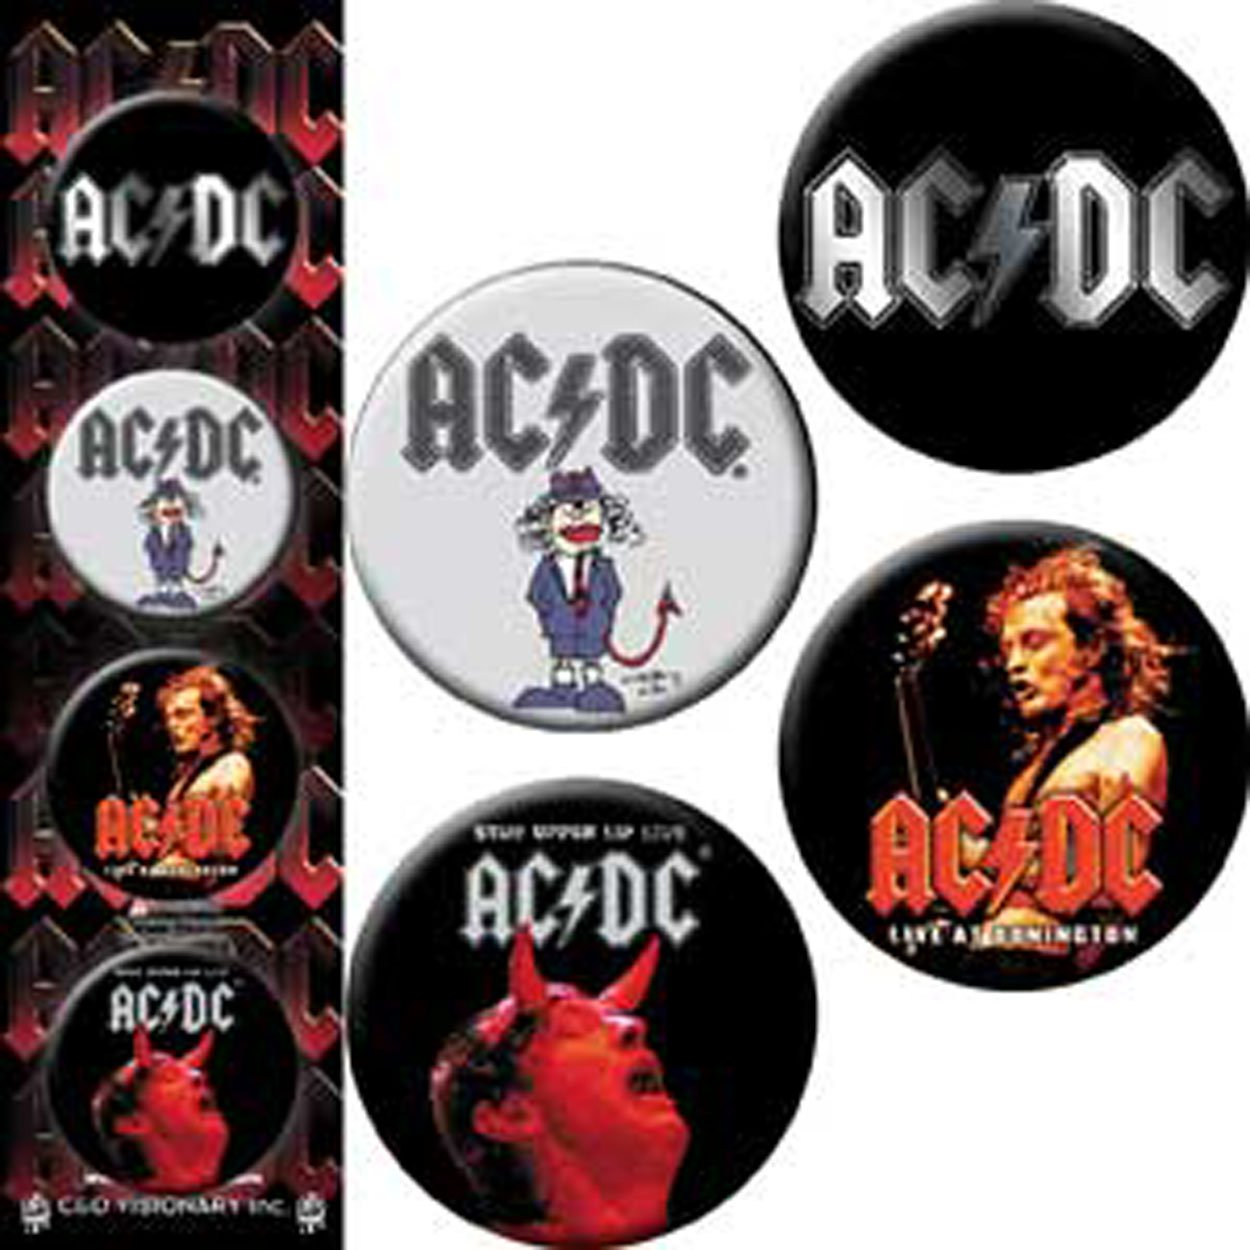 AC/DC 4 Pieces 4 Pieces Assorted gemischtLogo Button Taste Set Button Taste Set, Officially Licensed Products Classic Rock Assorted gemischtArtwork, Button Taste Set - 1.25' Each jeder Button Taste Set - 1.25 Each jeder B-5435-S